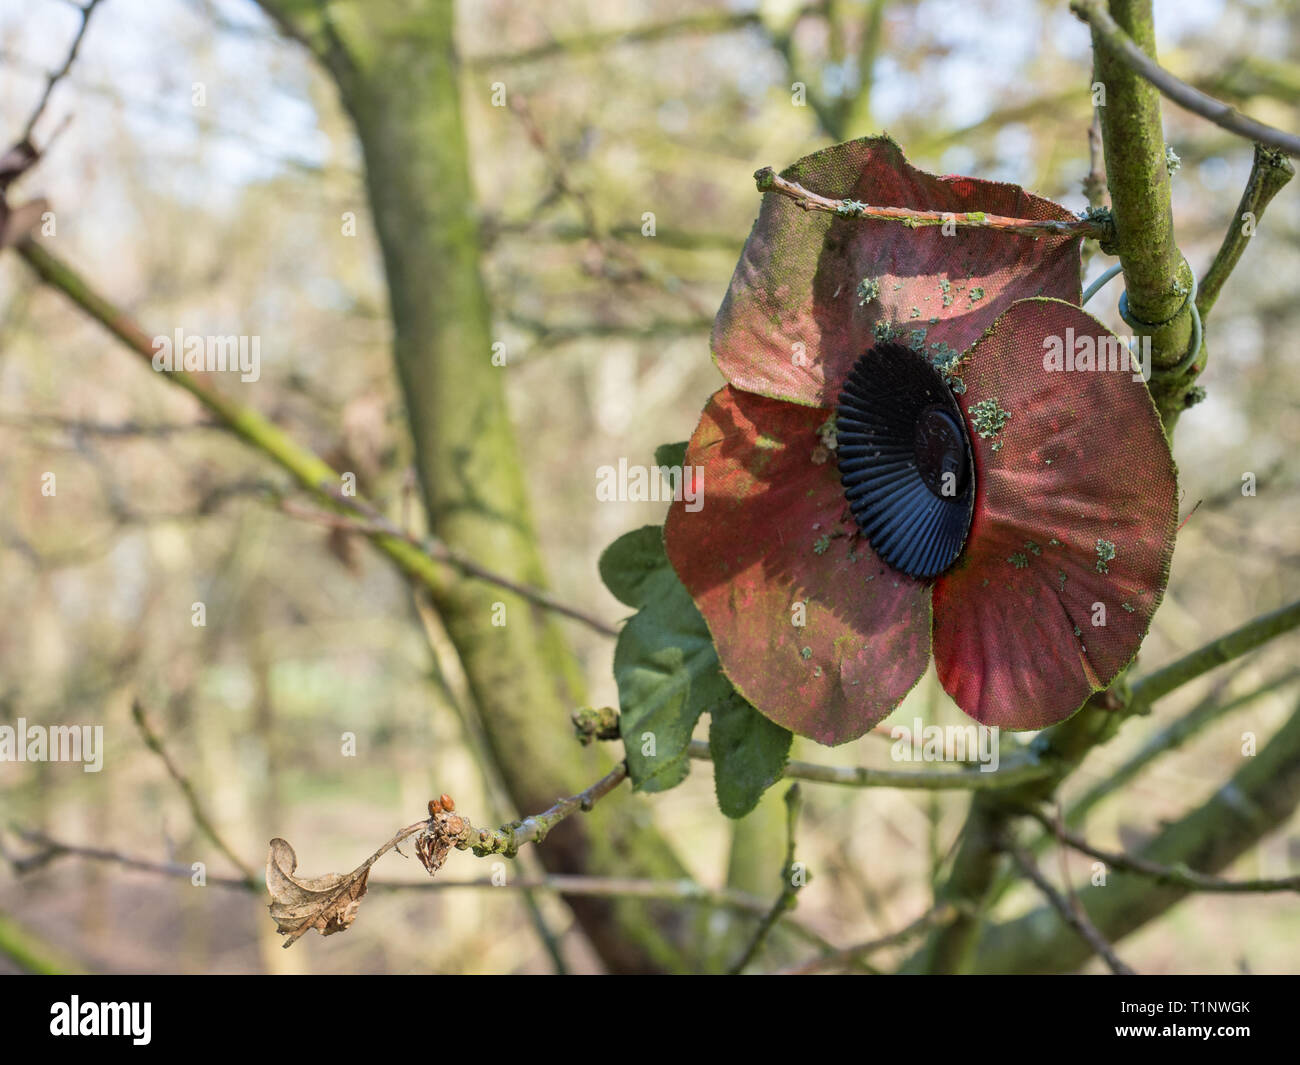 a single one isolated false artificial fabric paper old worn out faded weathered remembrance symbol commemorating poppy pin badge broach pinned branch - Stock Image